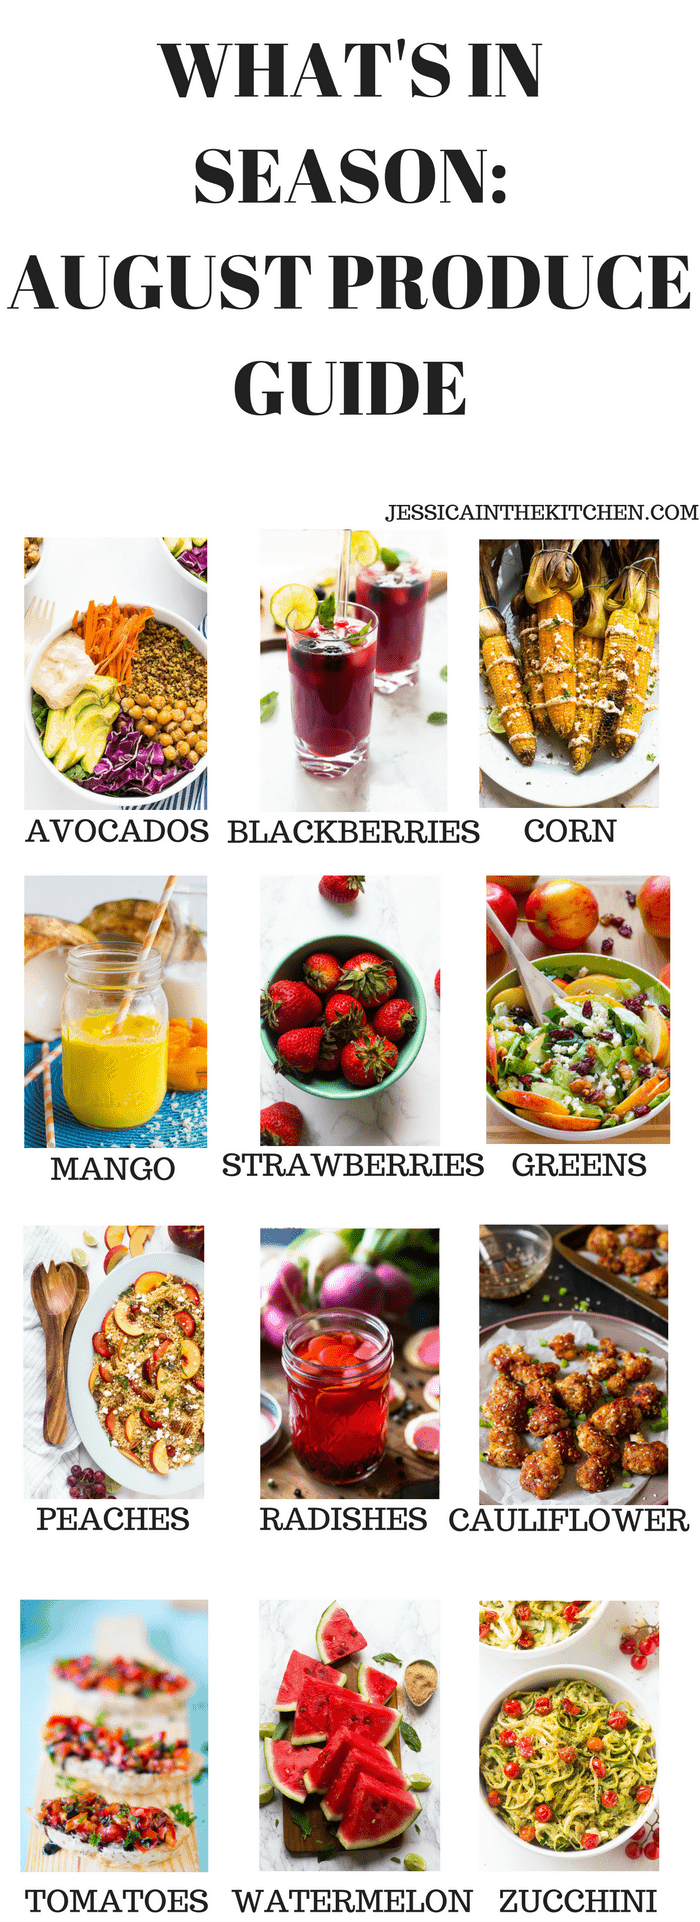 What's in Season: August Produce Guide. Here's a list of what you should cook this August based on what produce is in season for fresh, delicious and healthy recipes!